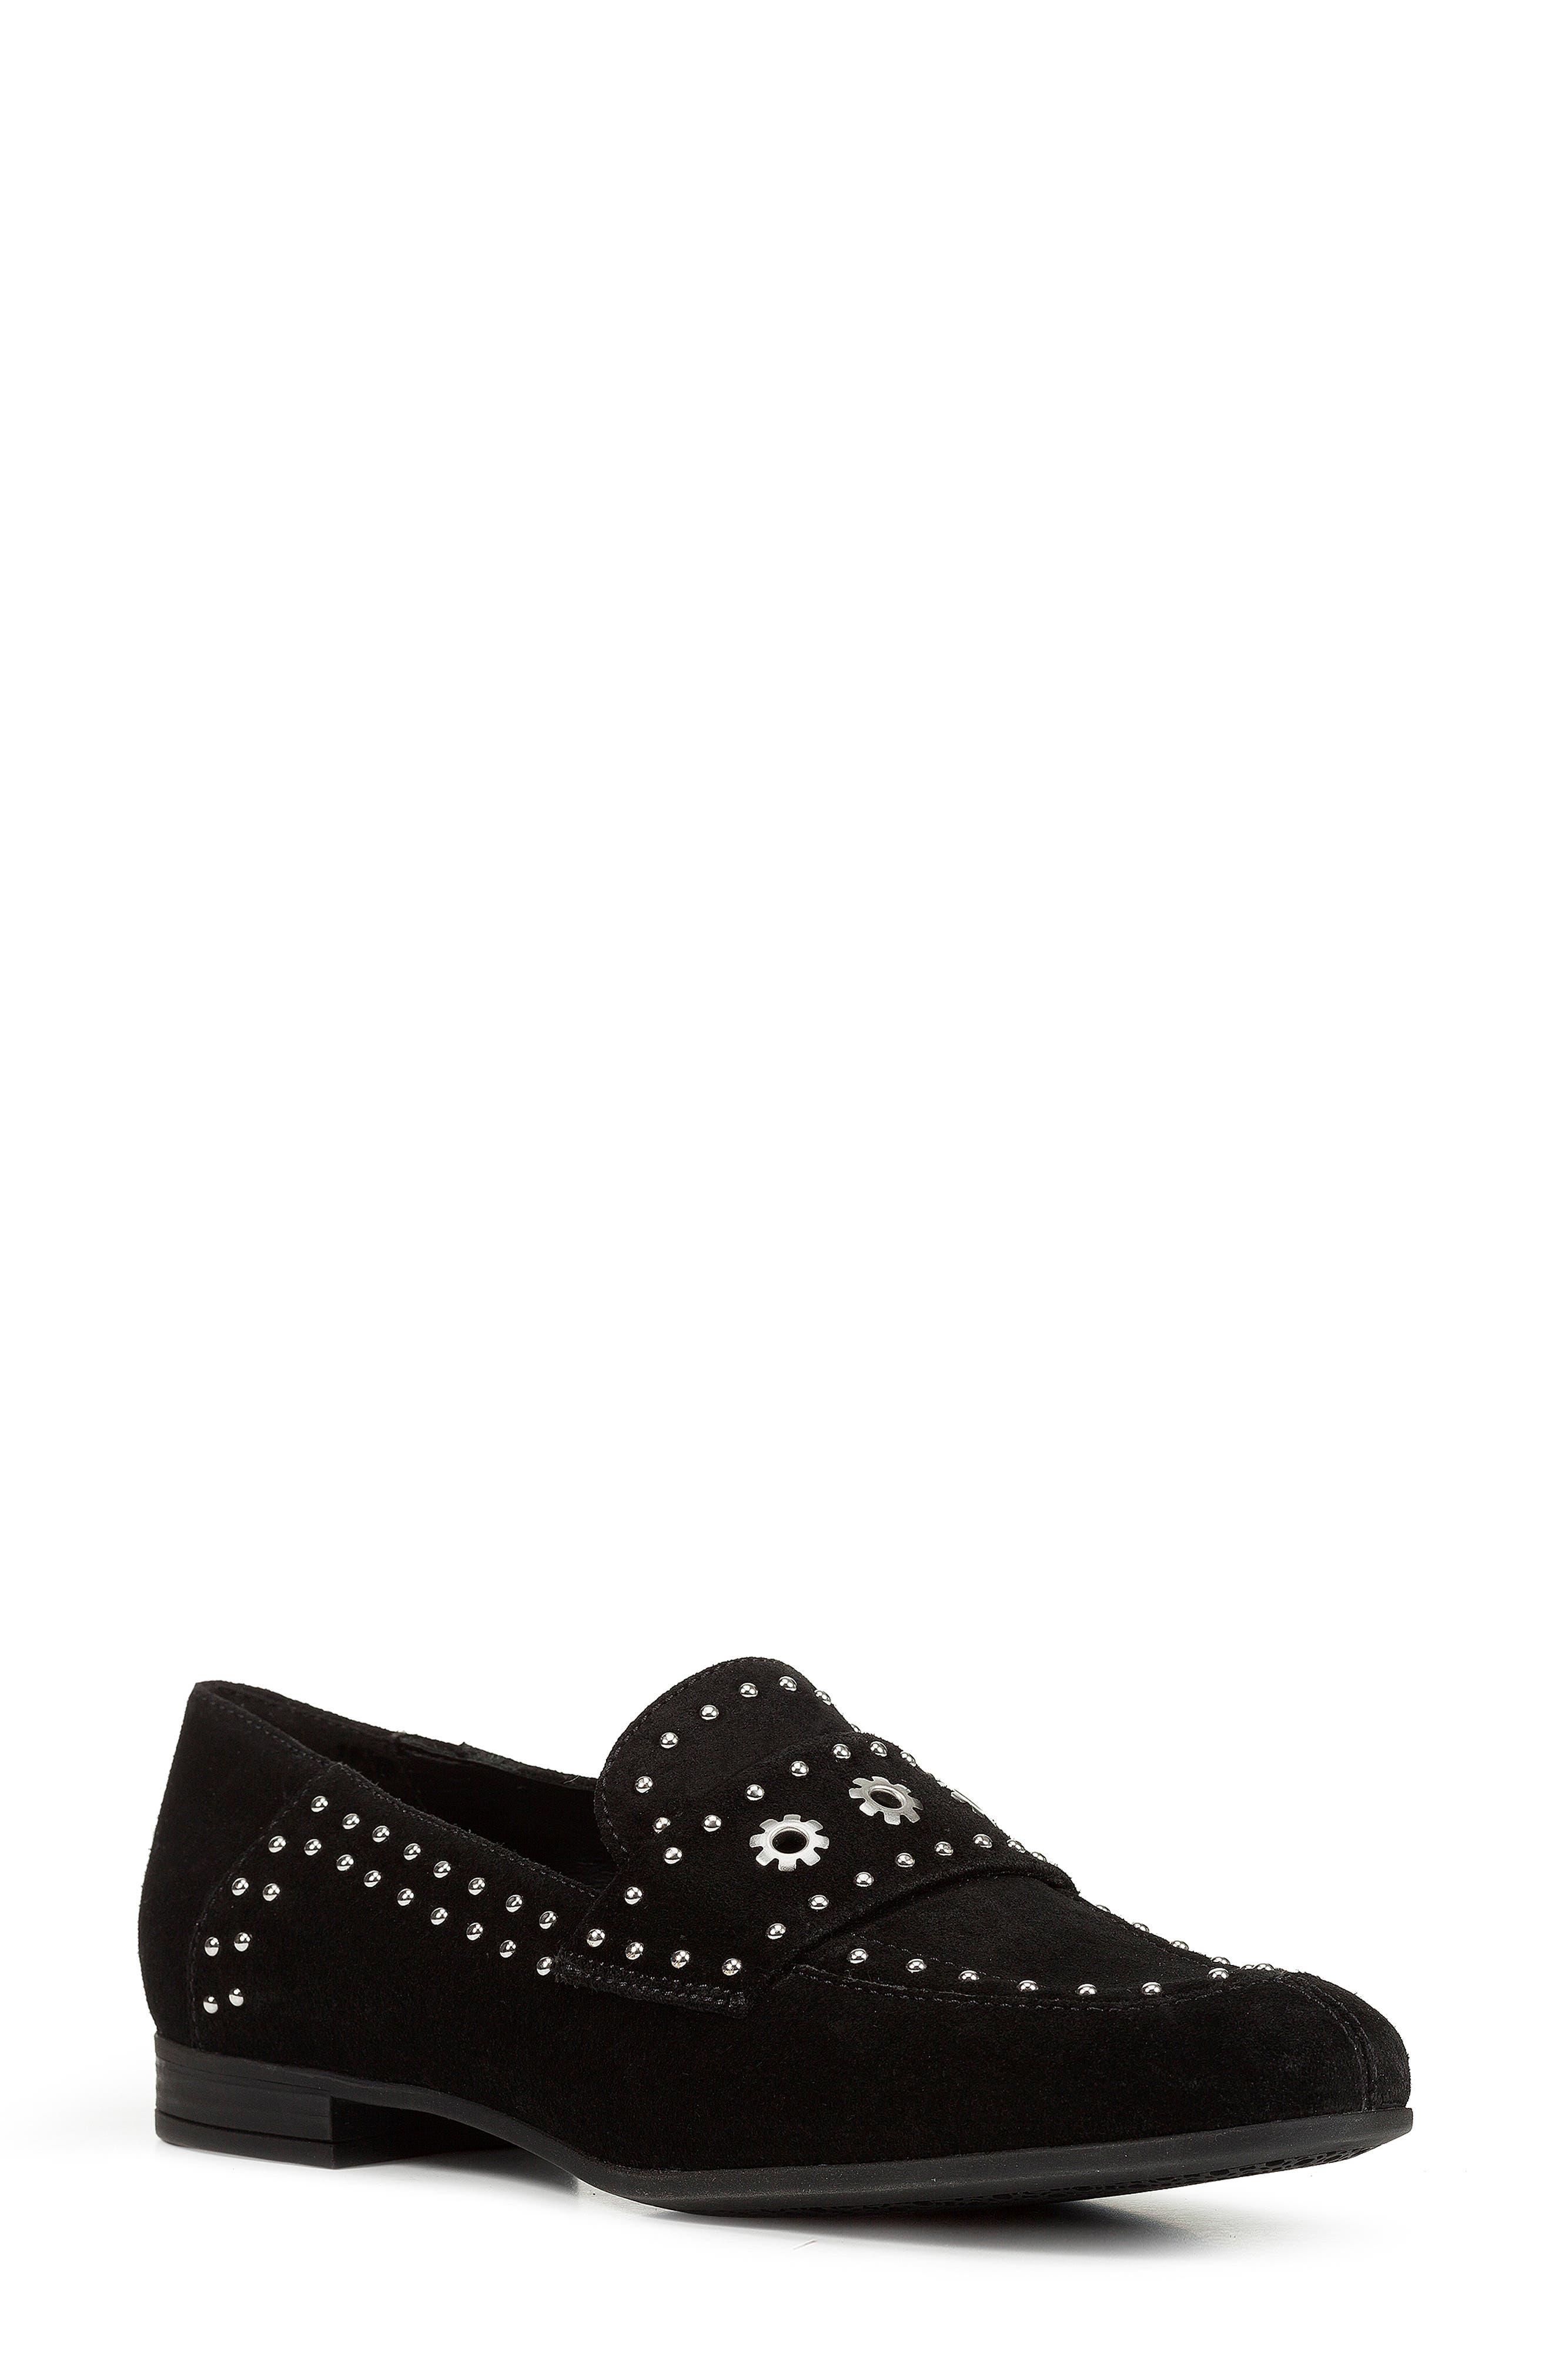 Geox Marlyna Studded Loafer, Black